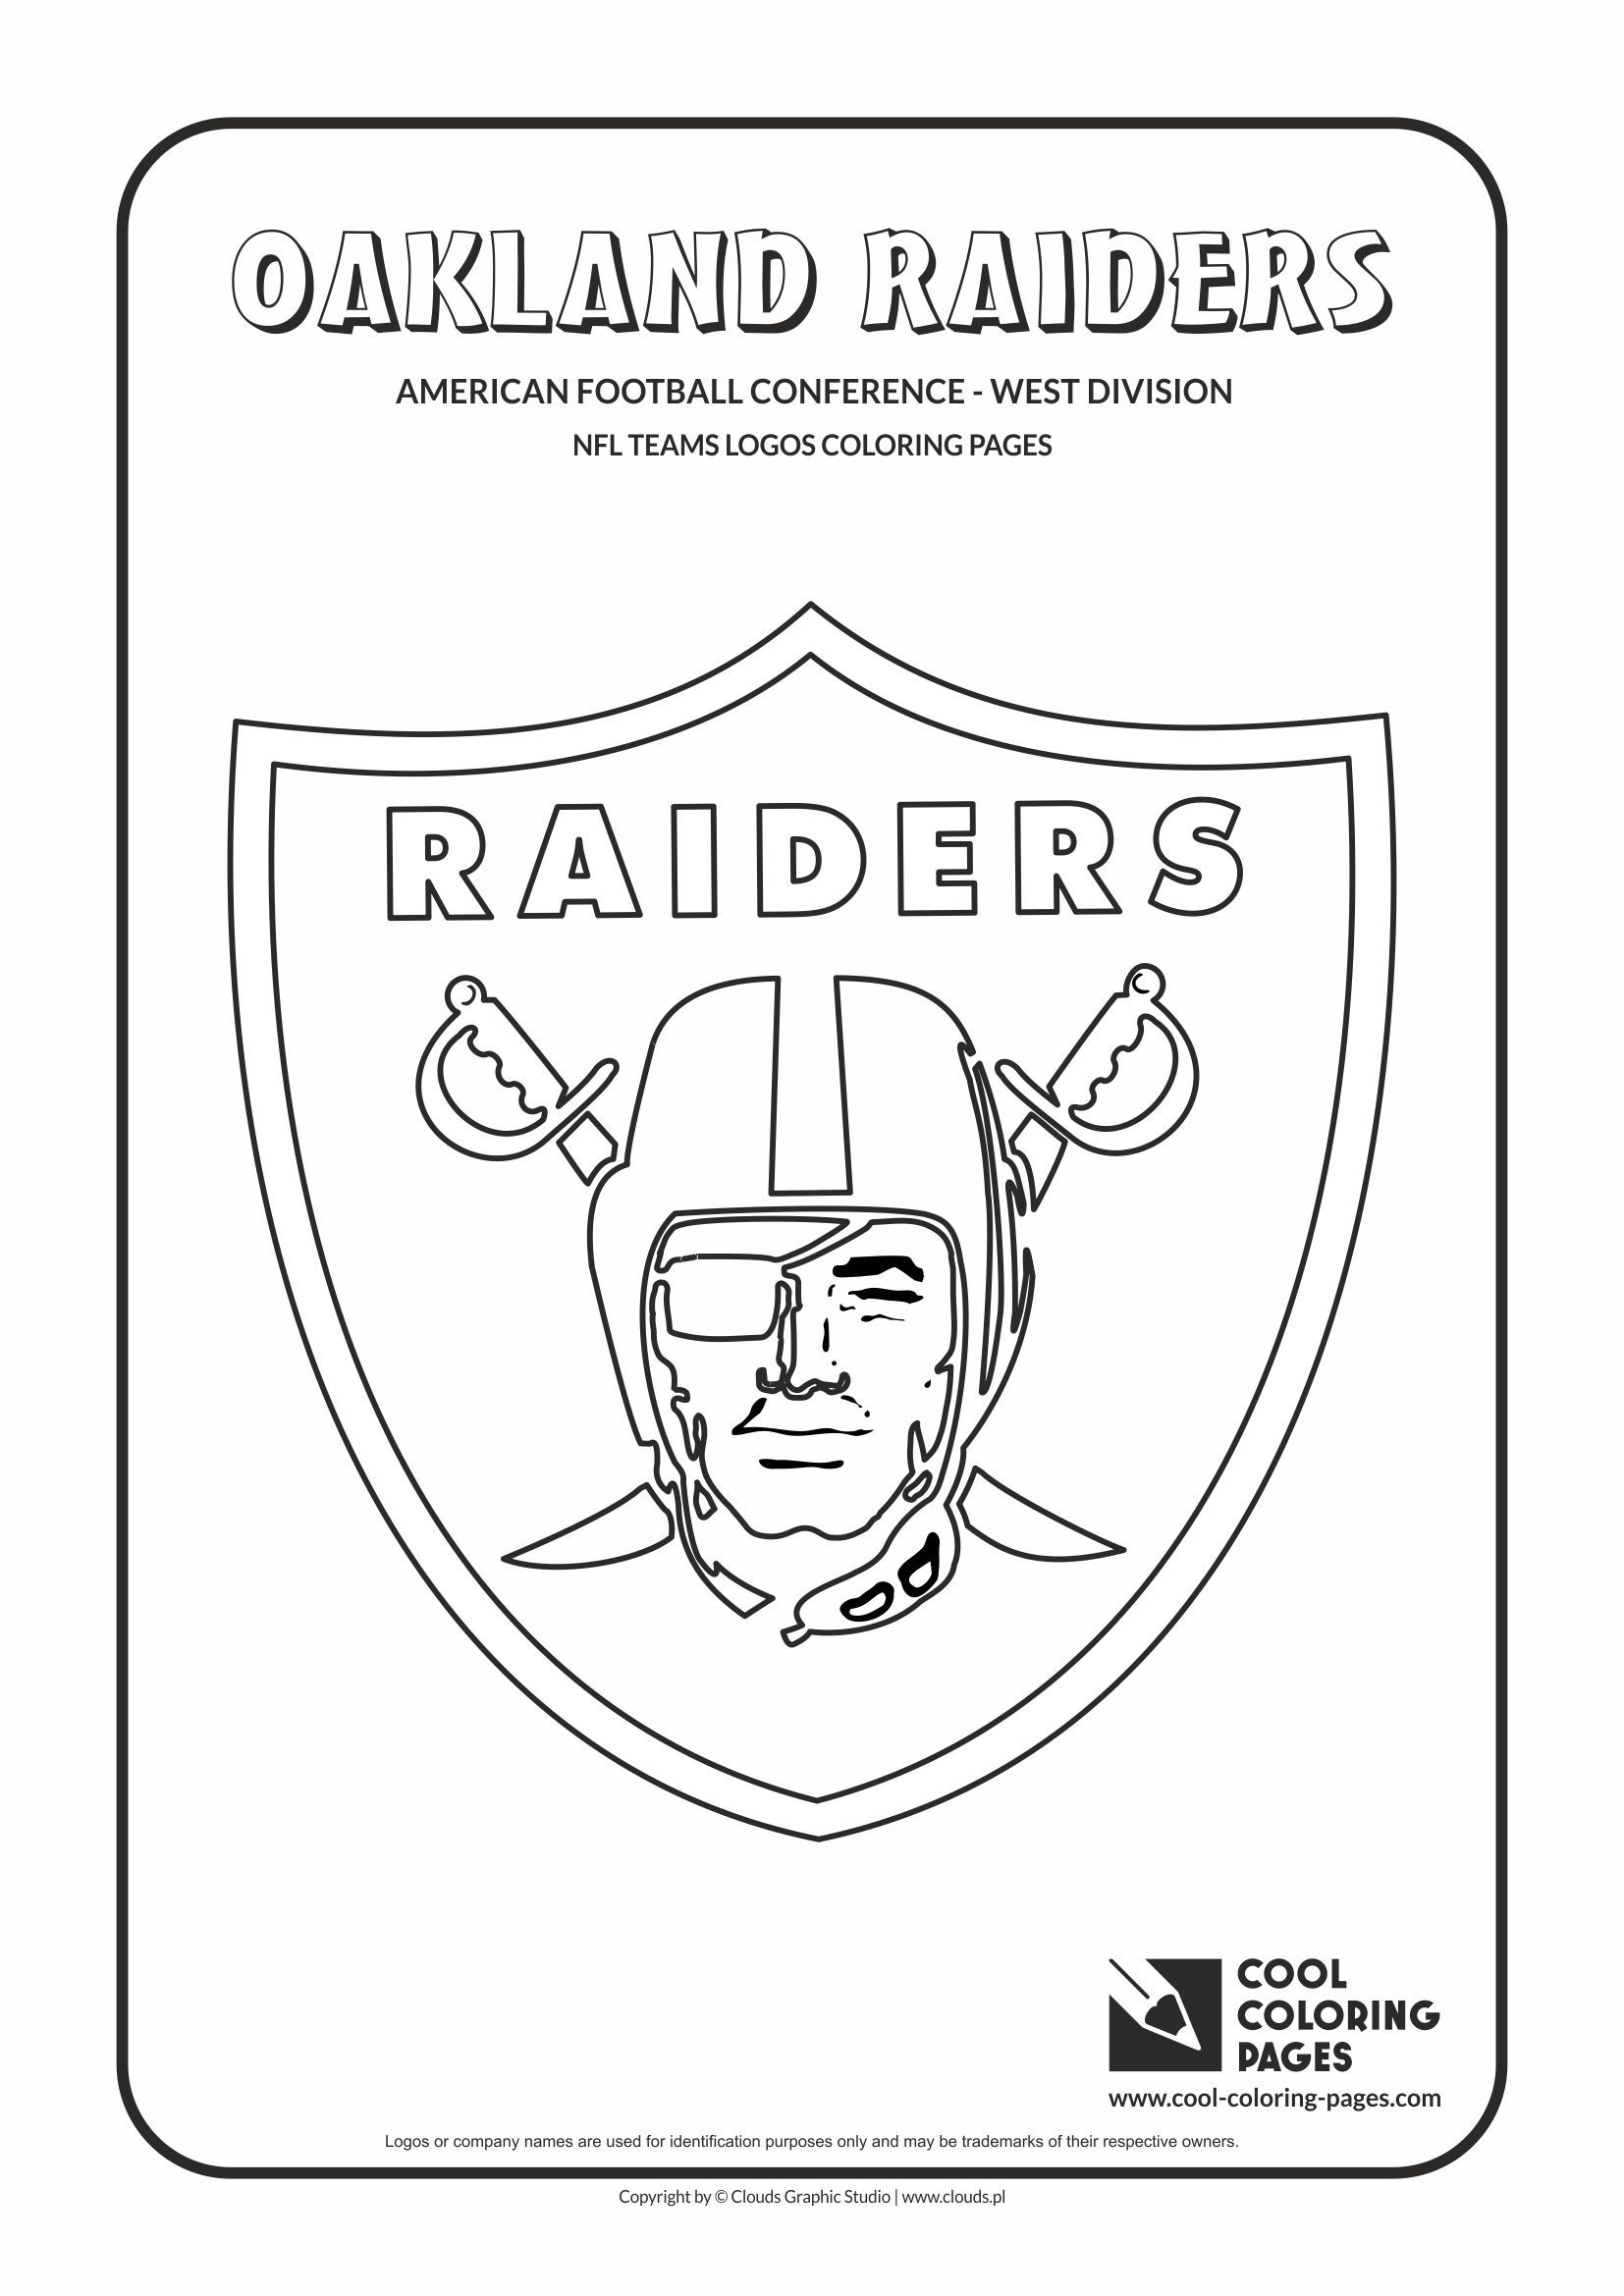 nfl mascot coloring pages Collection-Cool Coloring Pages NFL American Football Clubs Logos American Football… 13-l